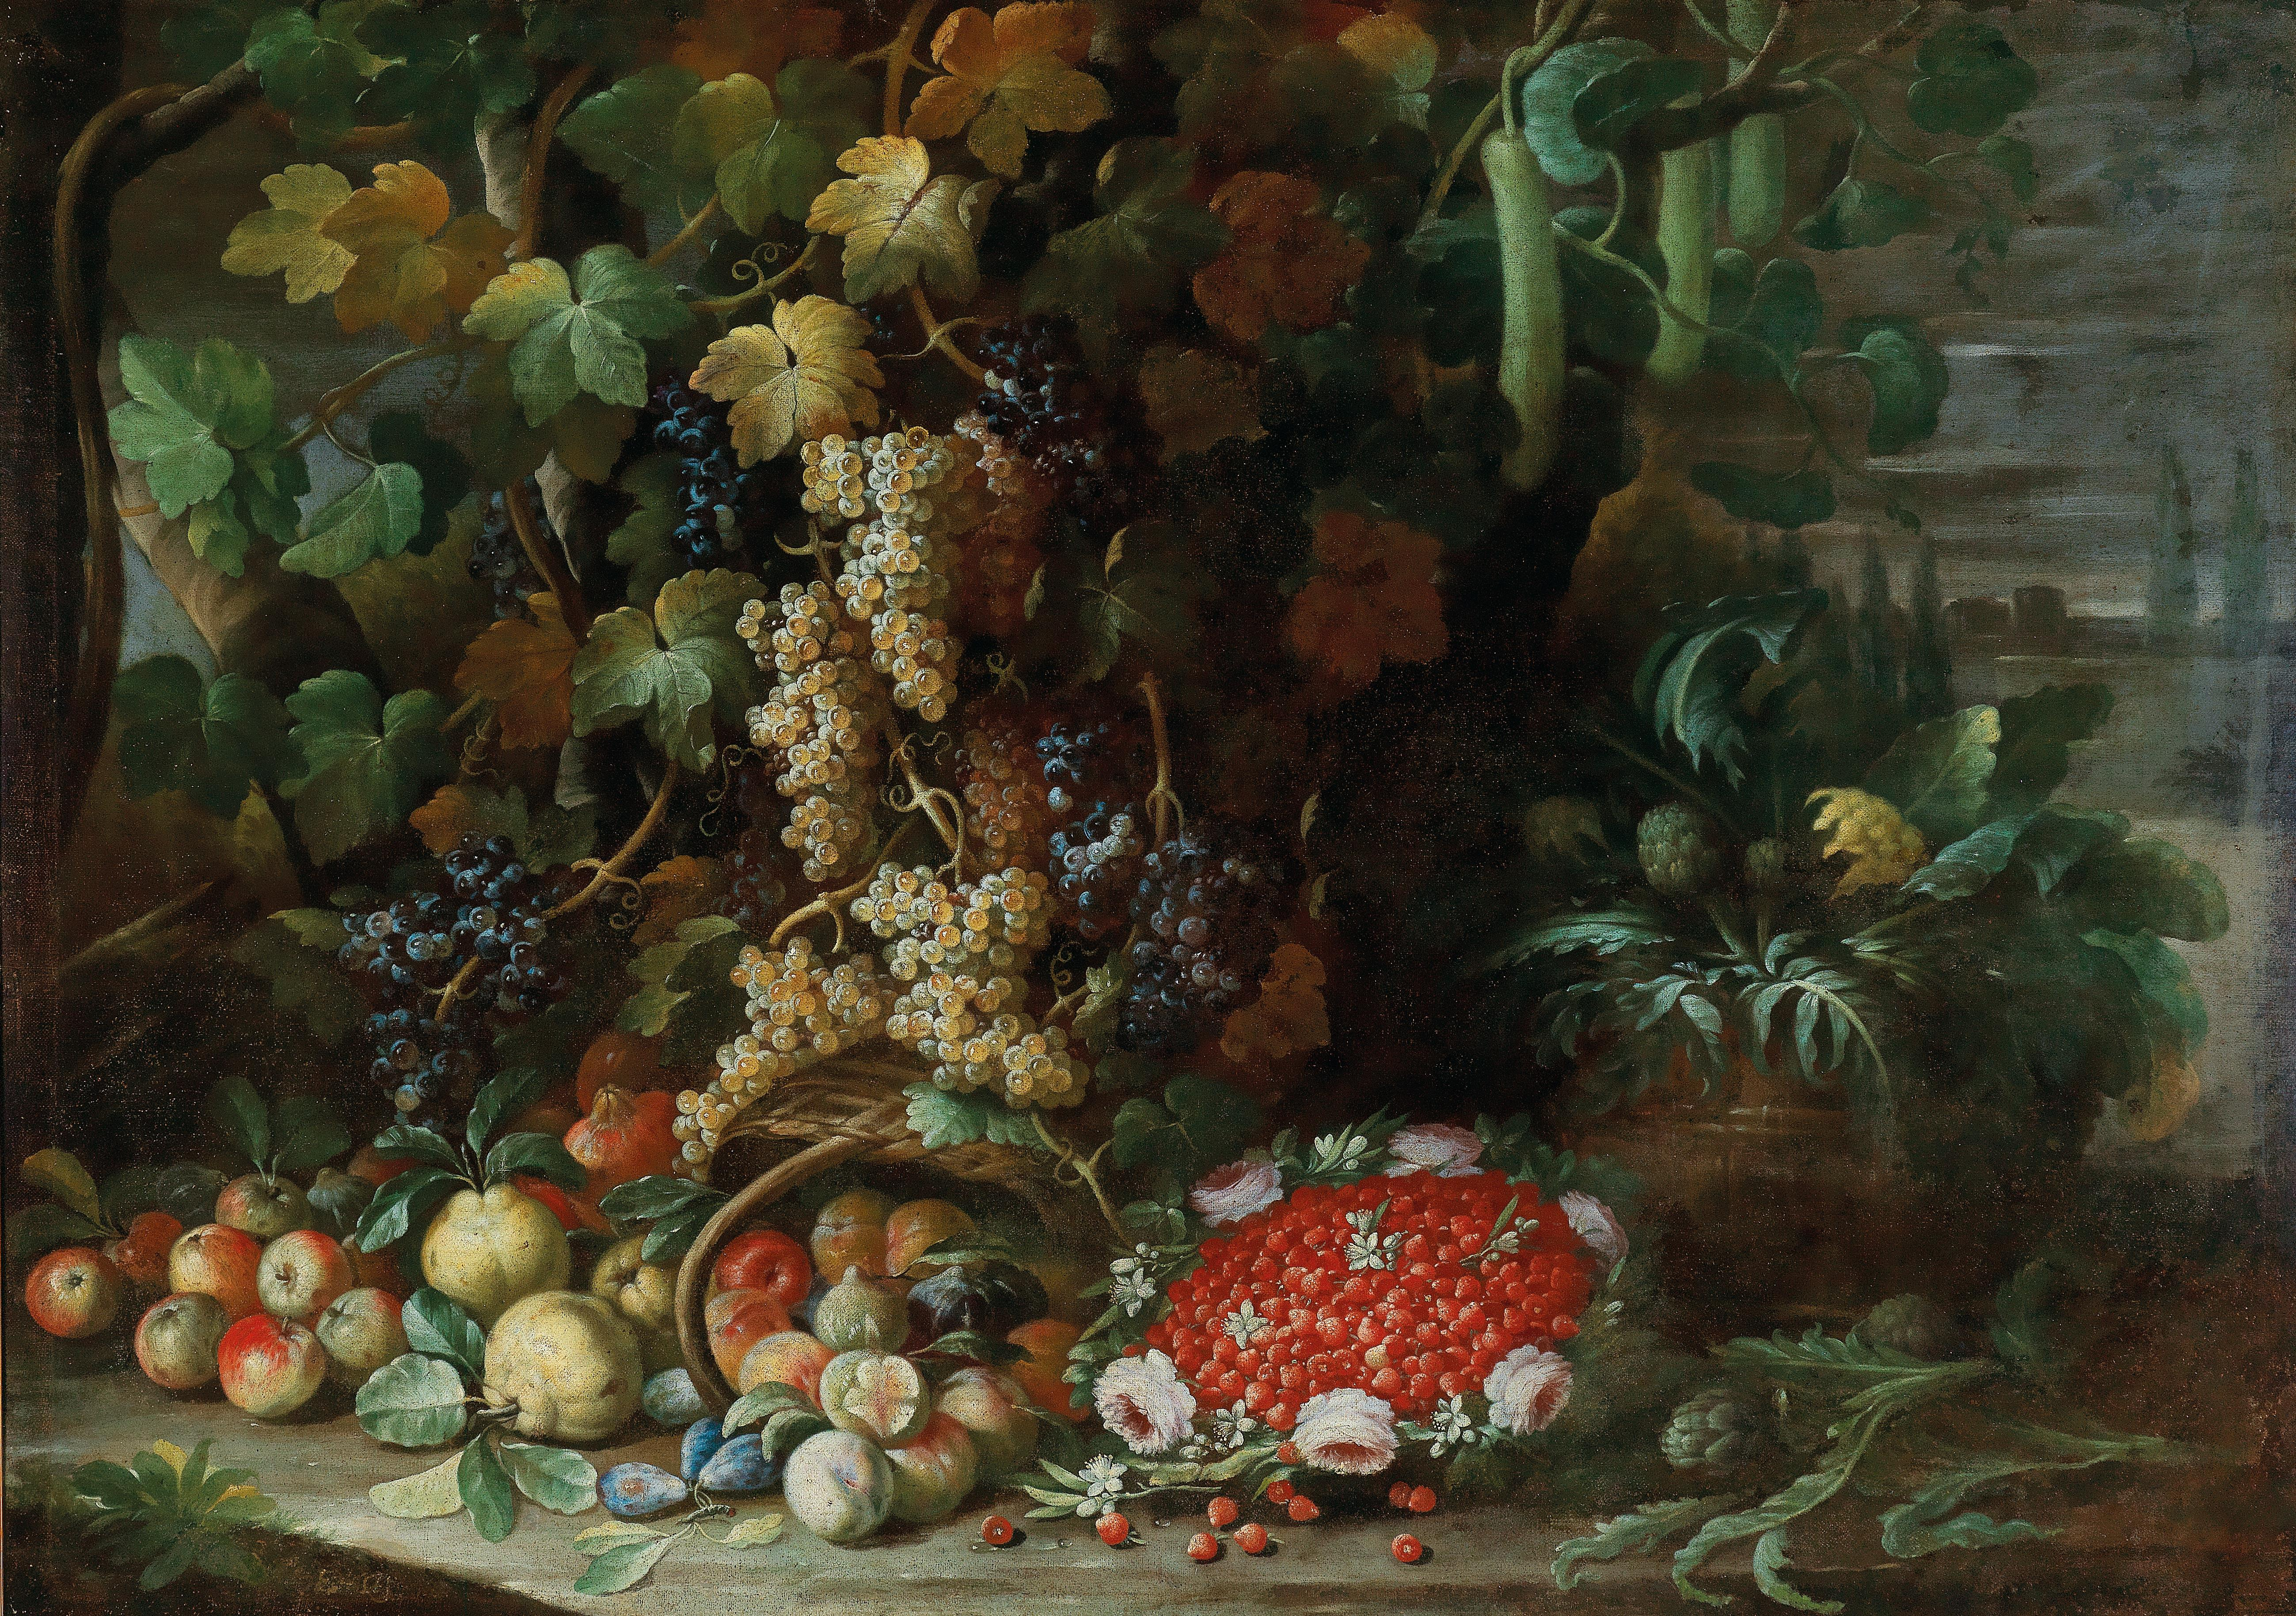 Francesco della Questa-An overturned basket of fruit, flowers and vegetables with a strawberry-filled garland in a villa garden